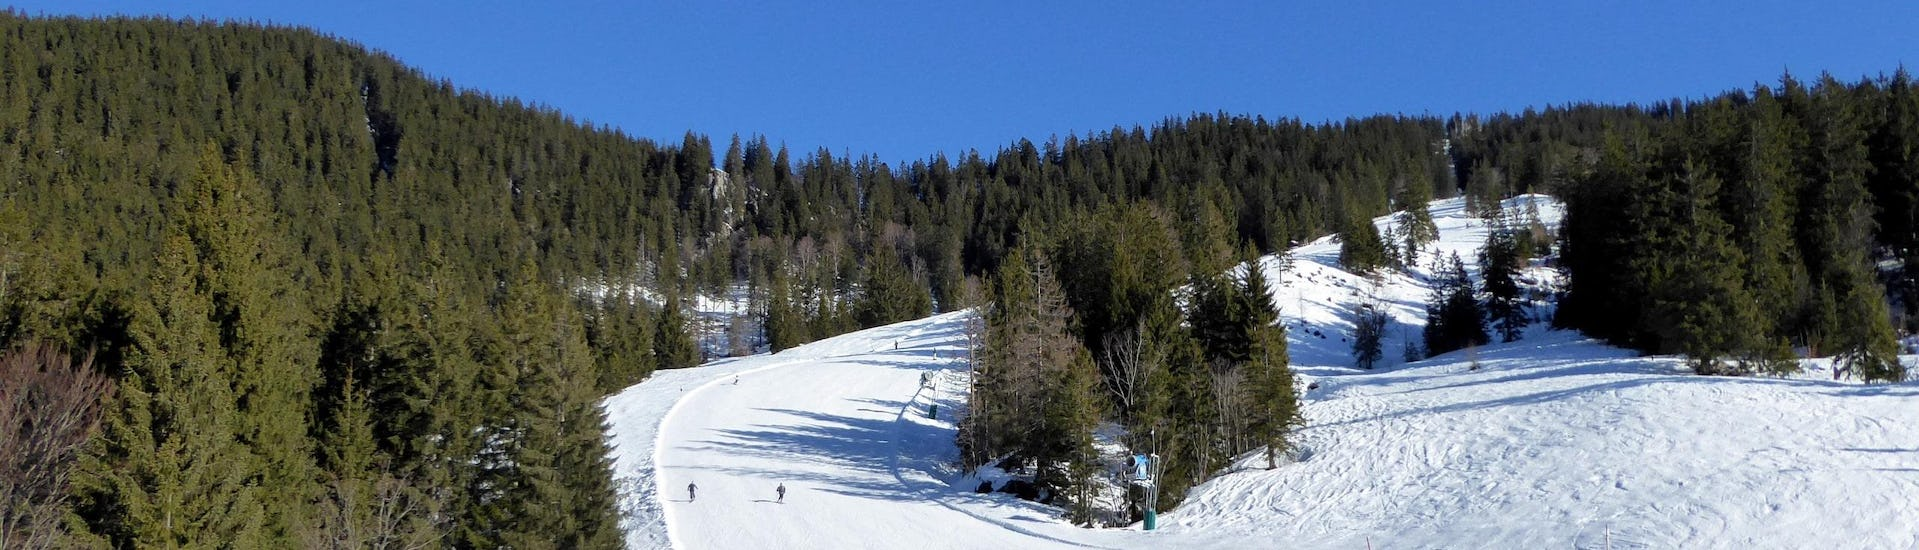 View over the sunny mountain landscape while learning to ski with the ski schools in Spitzingsee-Tegernsee.